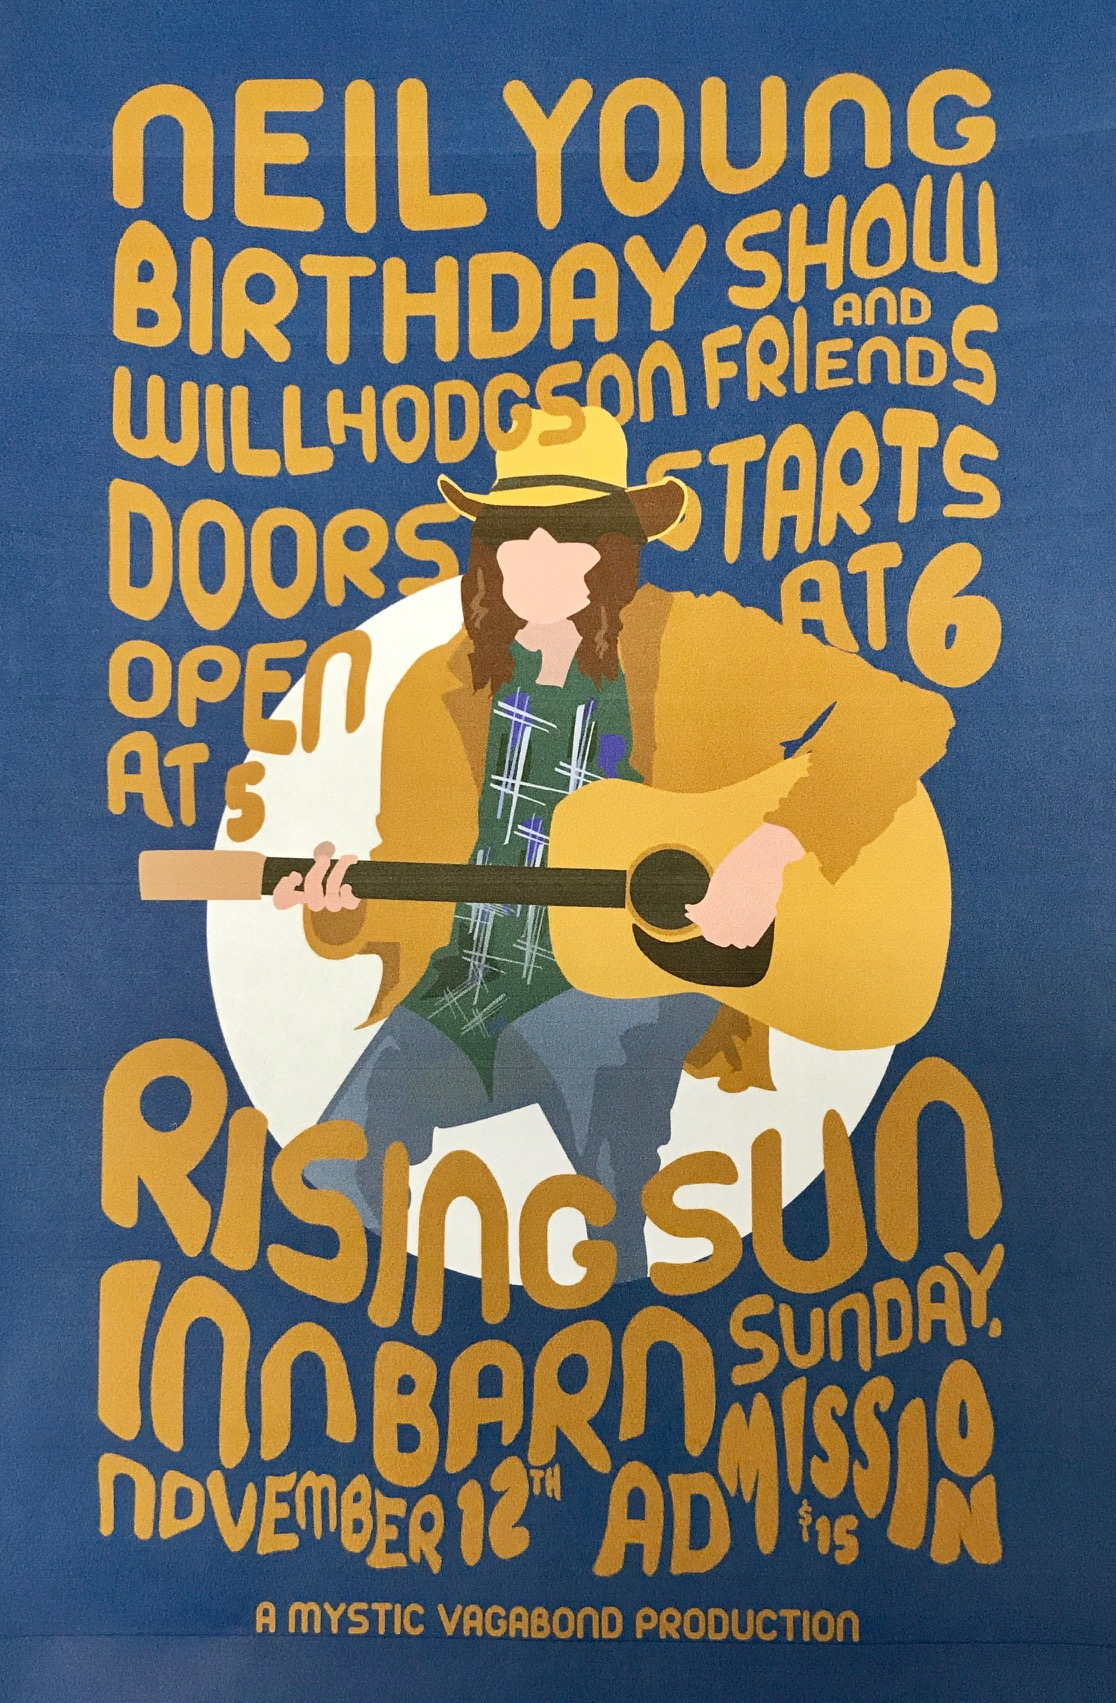 Will Hodgson - November 12  - Neil Young.png.jpg